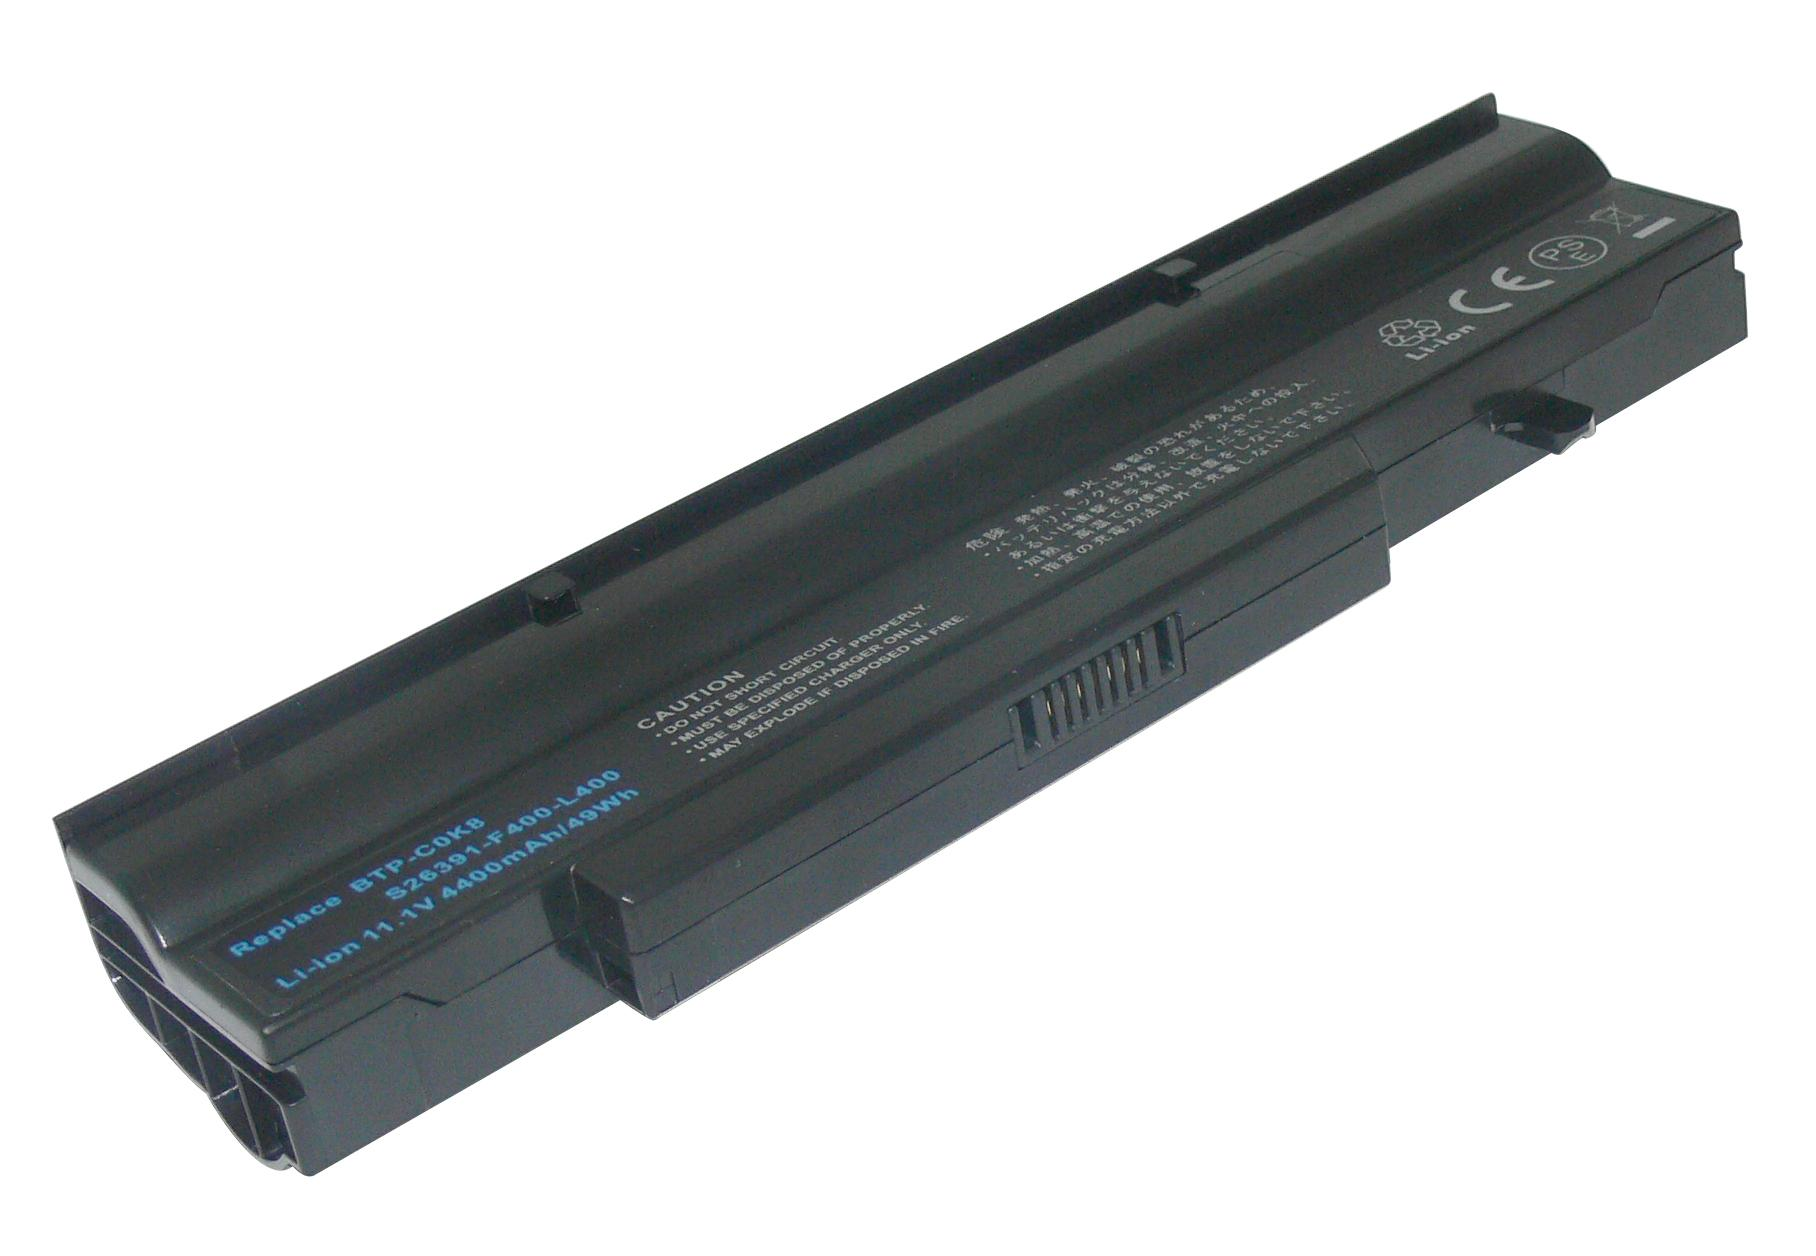 Replacement Fujitsu S26393-E005-V161-02-0746 Battery